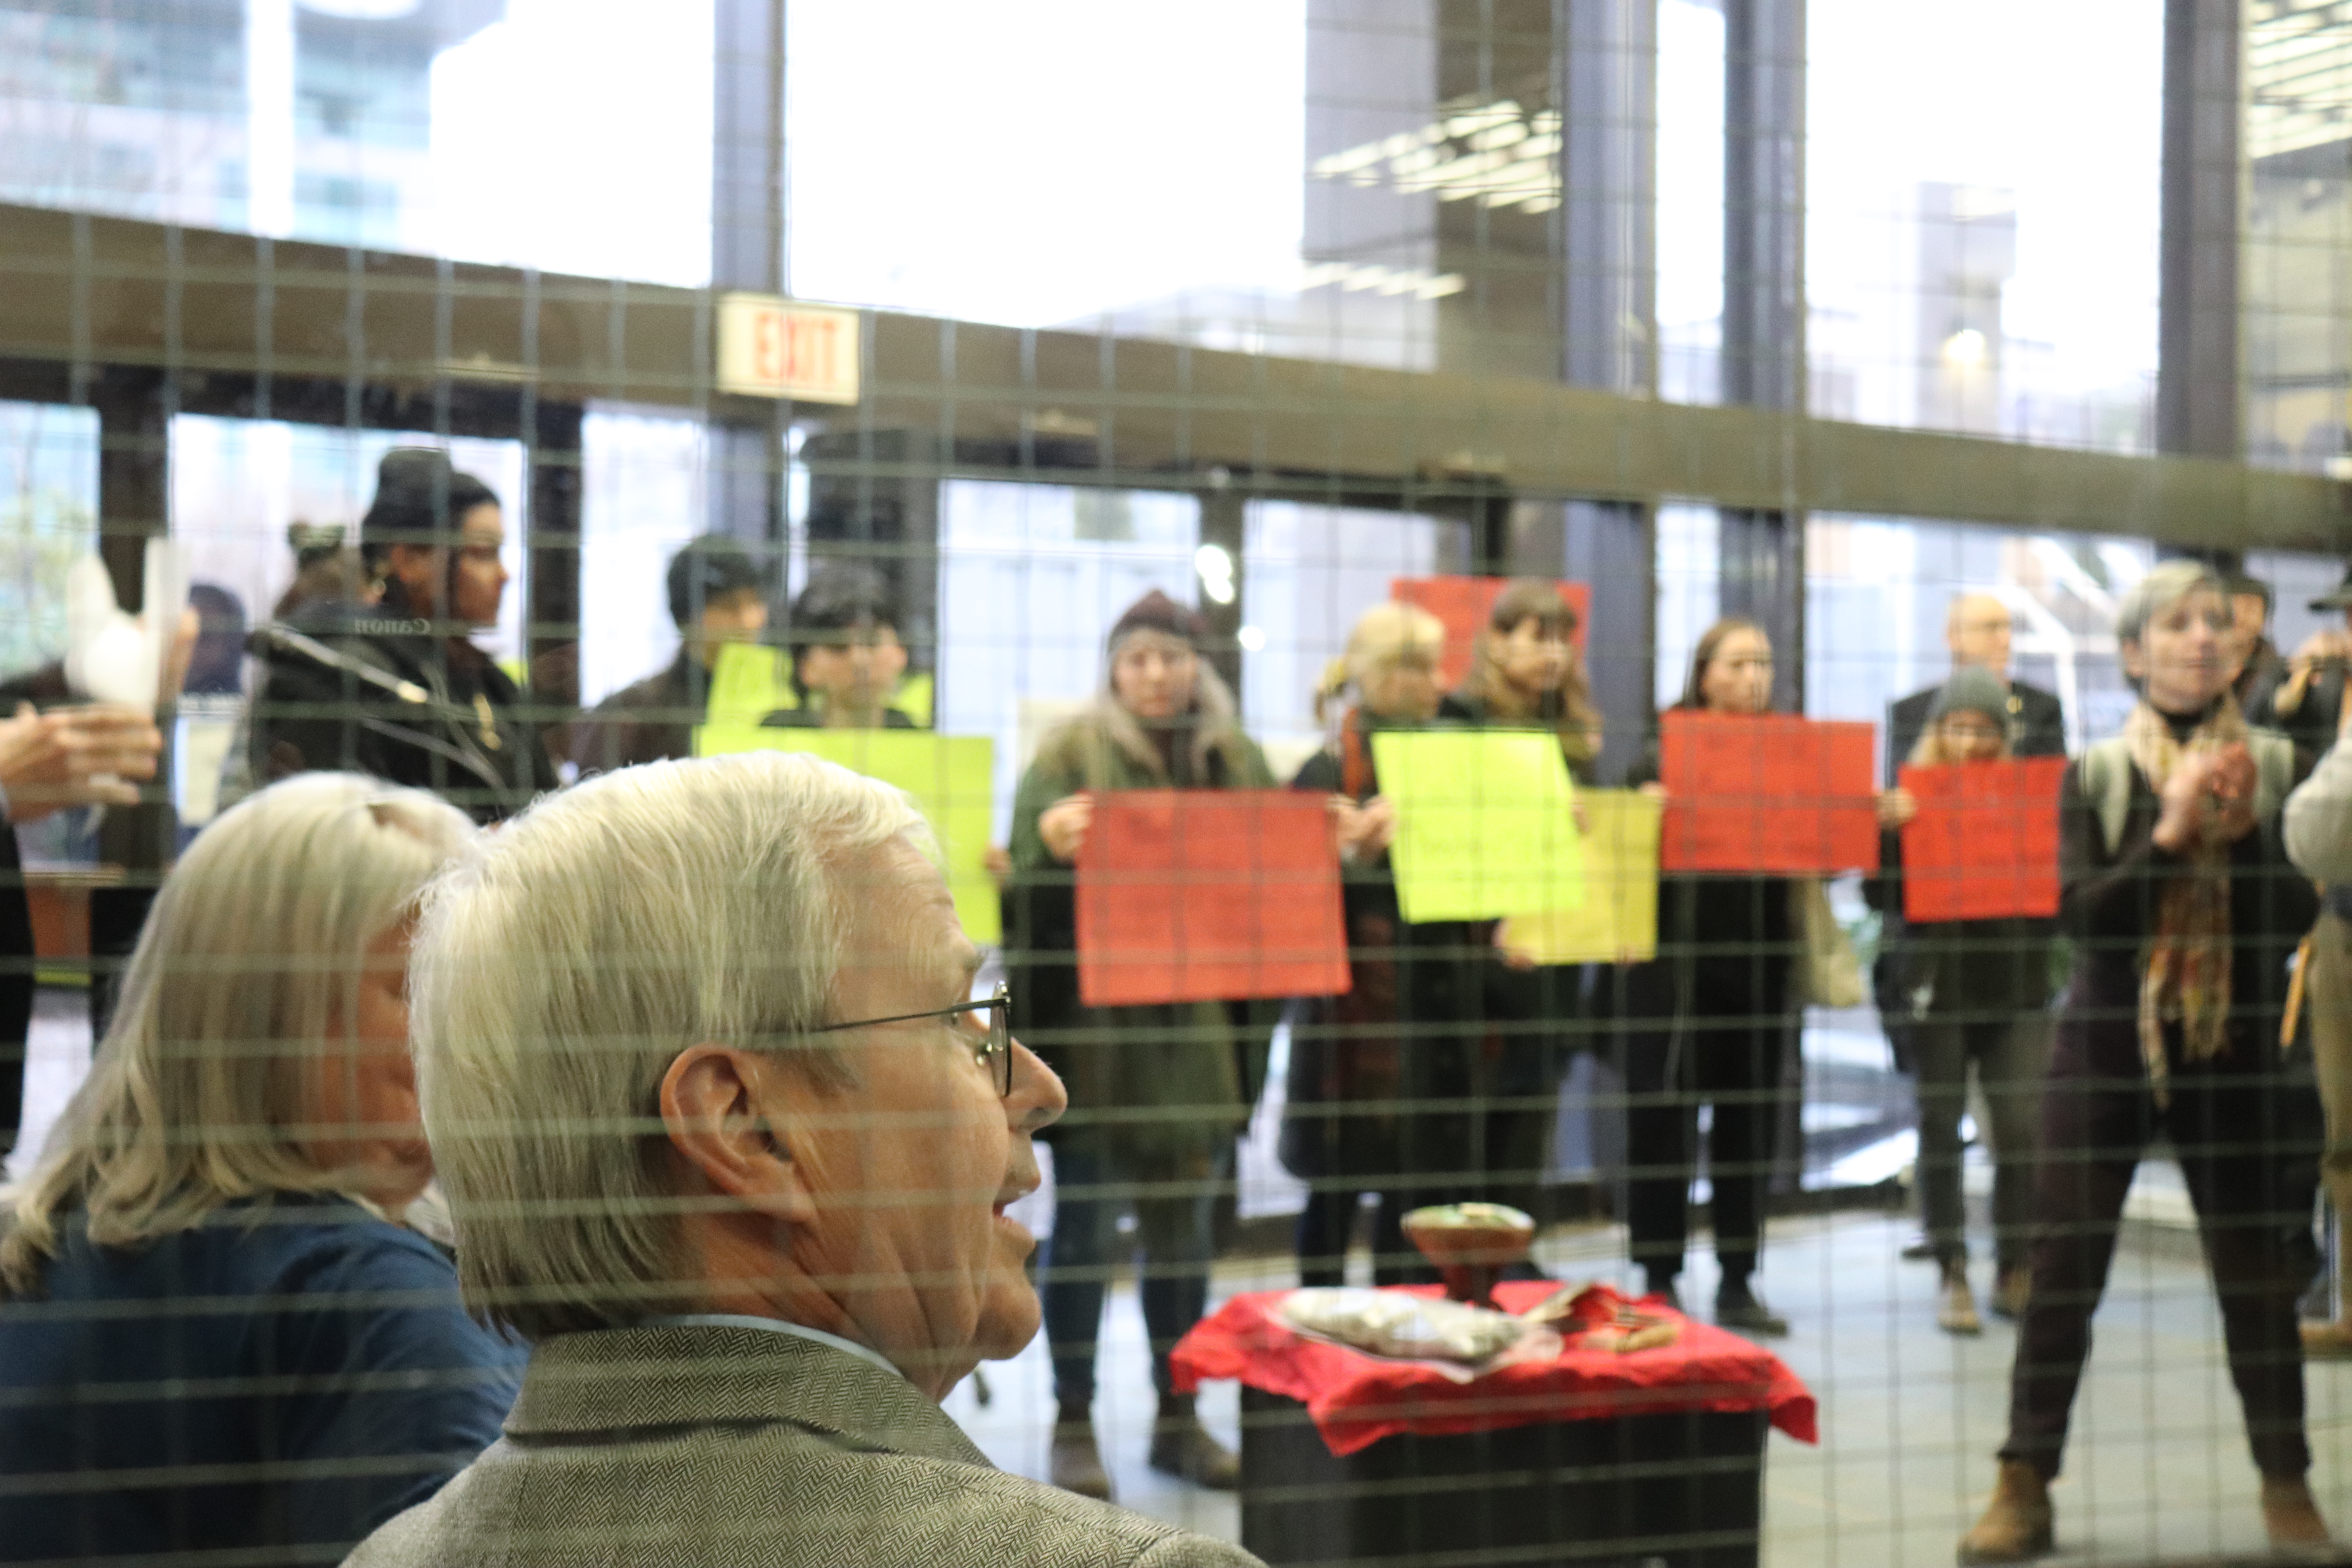 MacKinnon sits down after his speech, students hold signs in front of him.